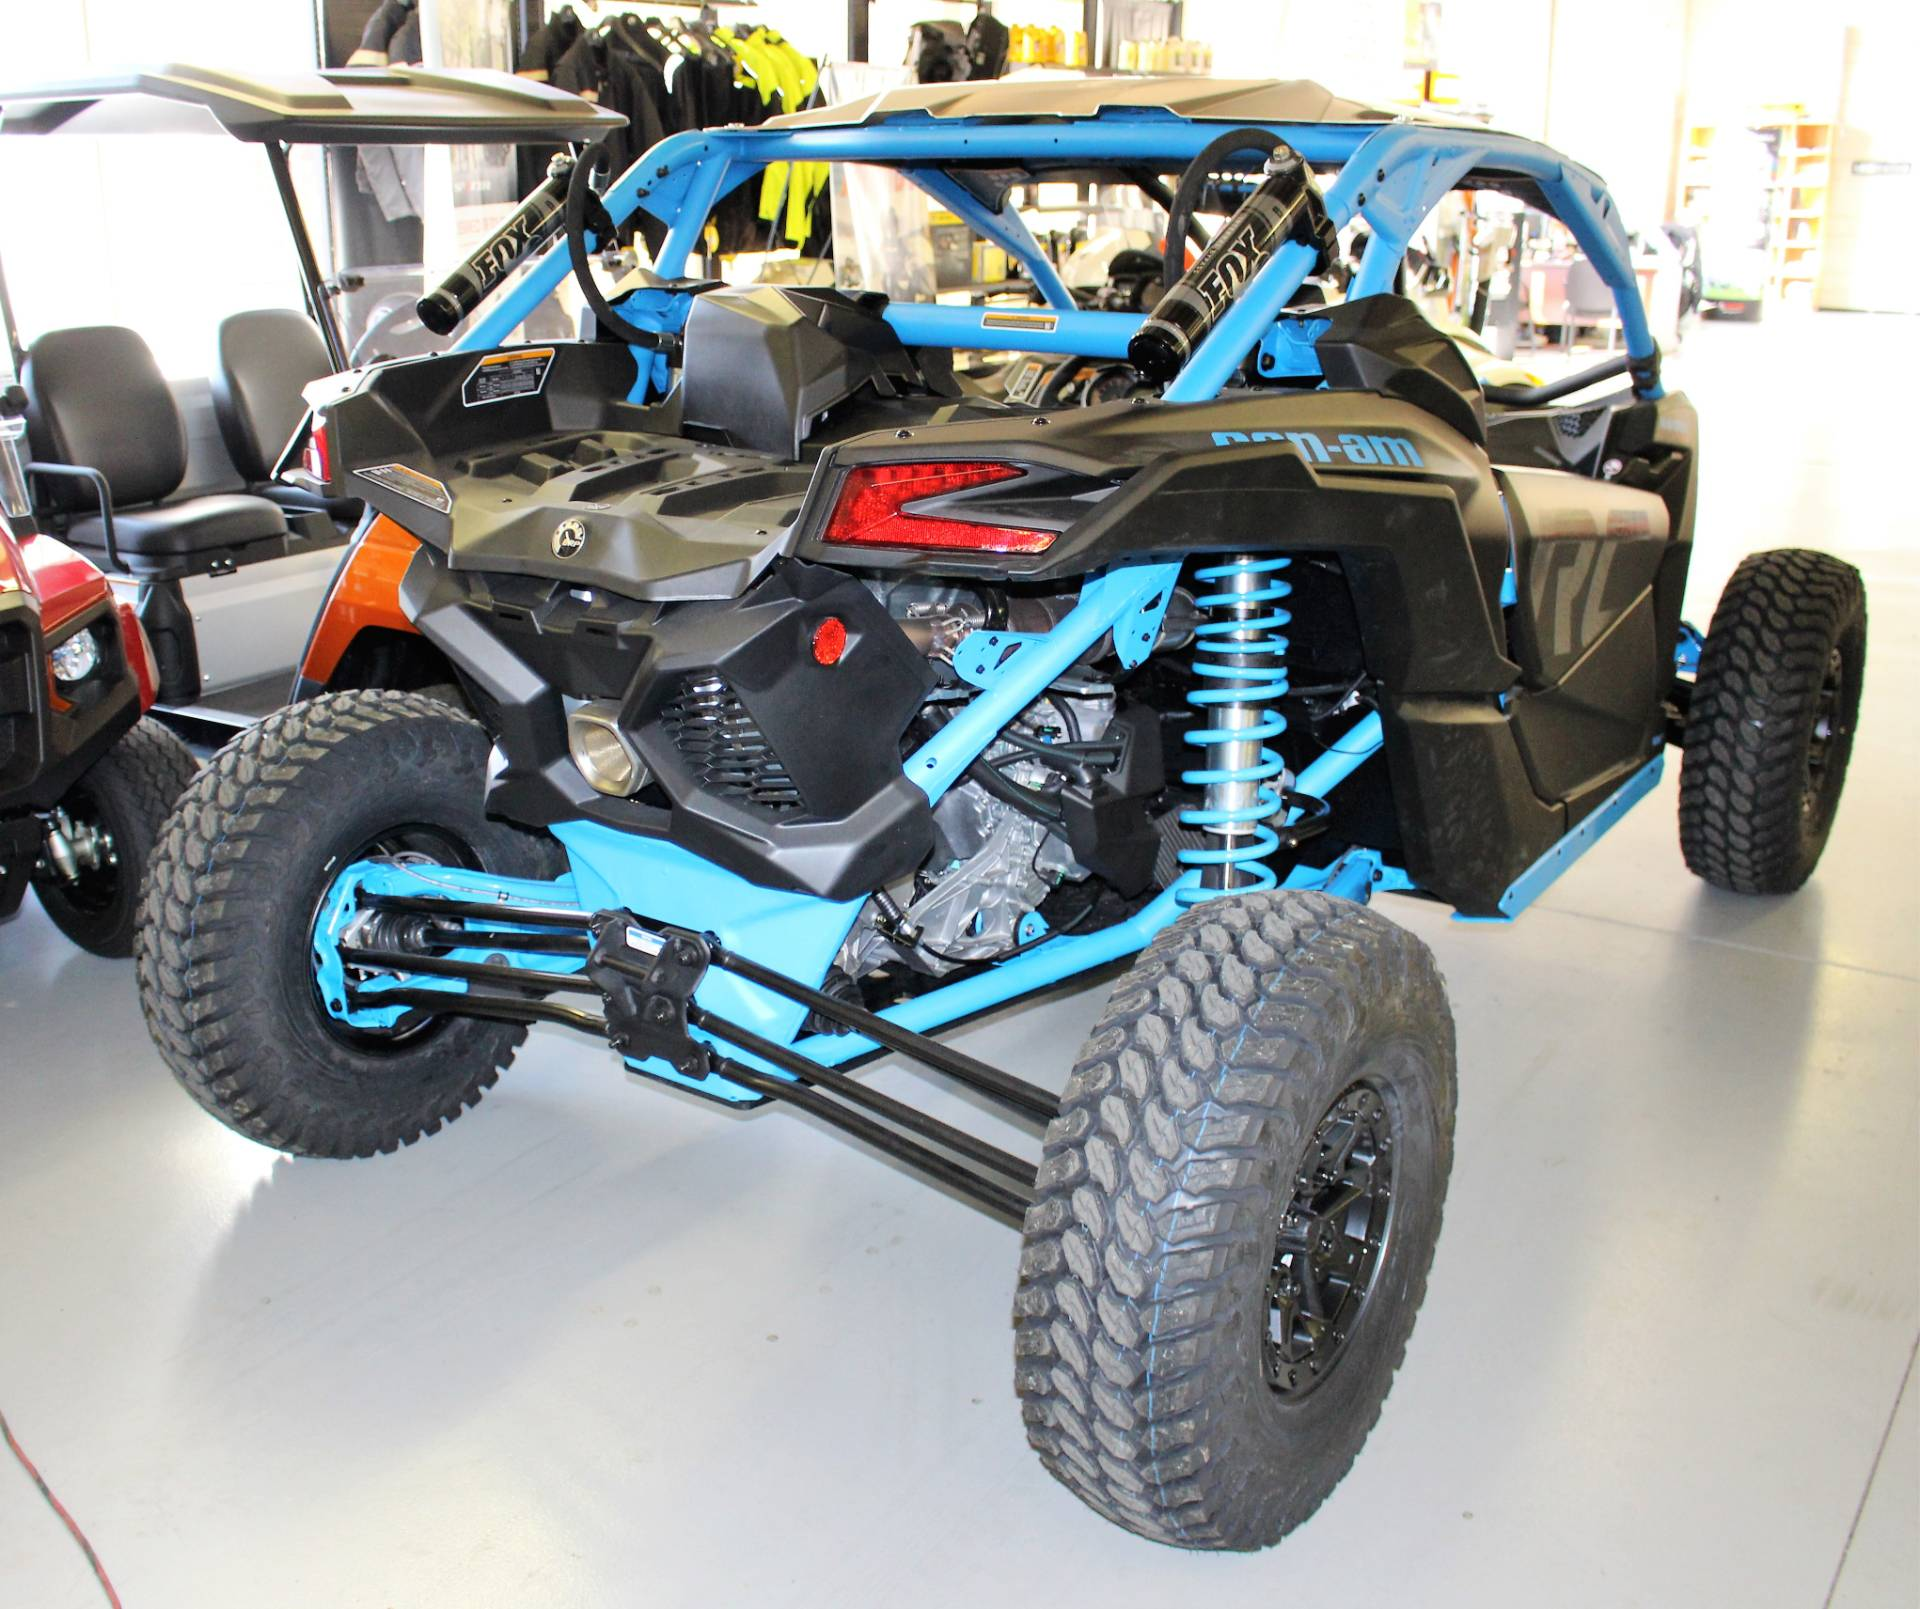 2019 Can-Am Maverick X3 X rc Turbo R in Ruckersville, Virginia - Photo 5